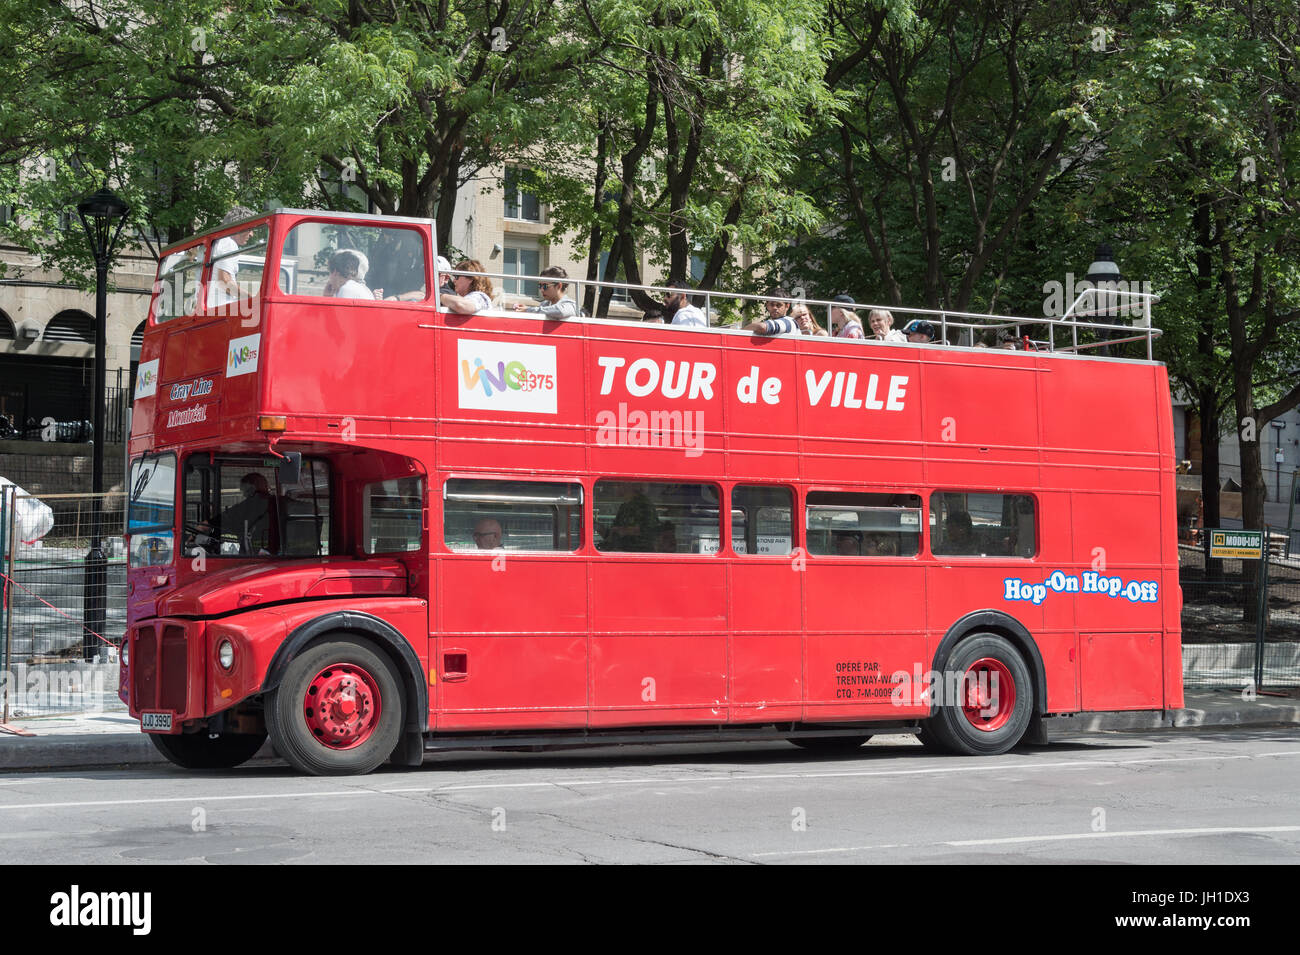 Montreal, CA - 9 July 2017: British style Double-decker tour bus 'Tour de ville' in Vieux-Montreal - Stock Image